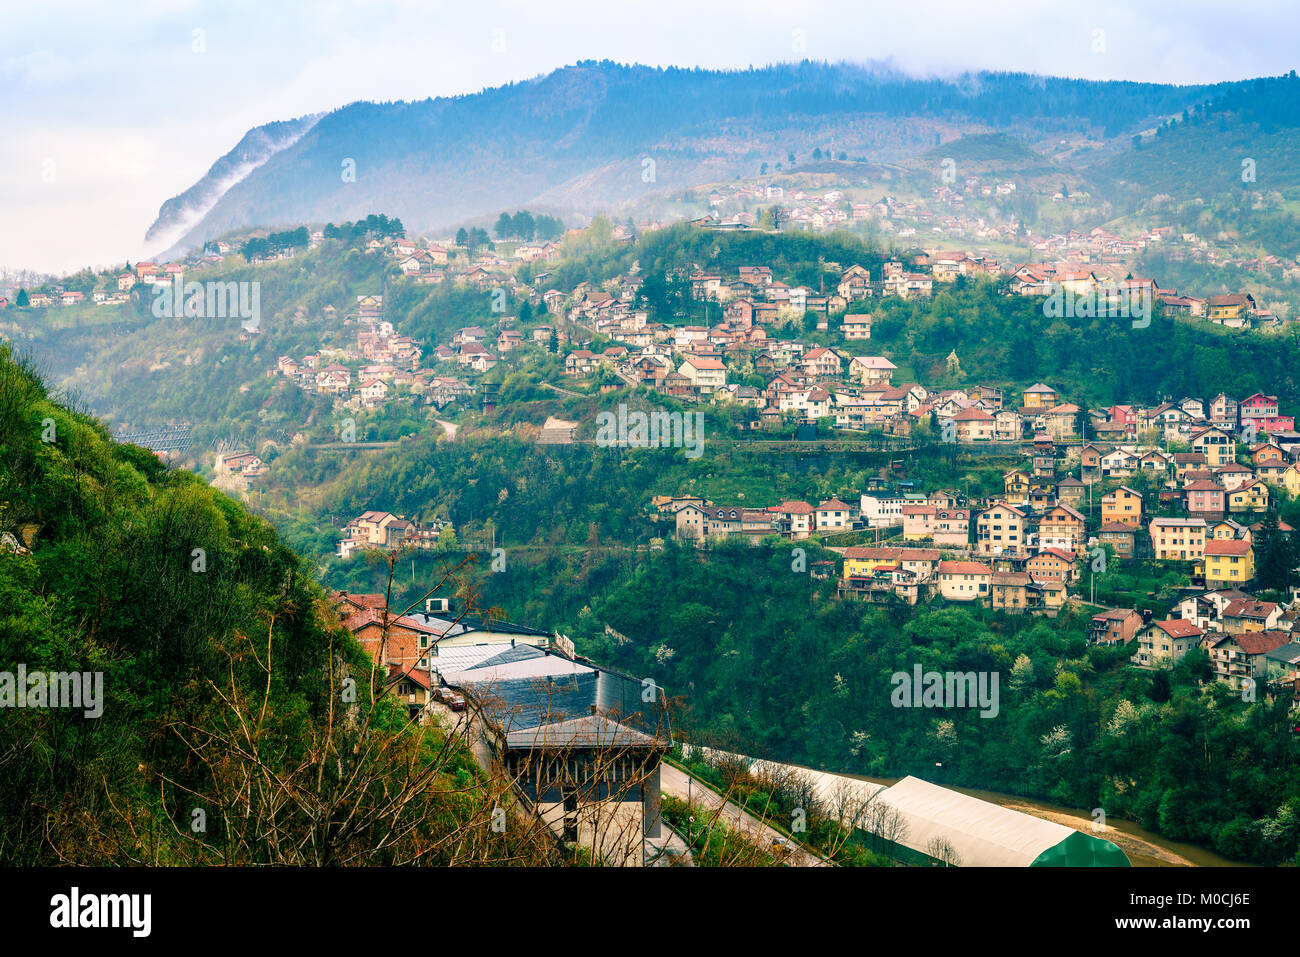 Scenic view of the city of Sarajevo, Bosnia - Stock Image